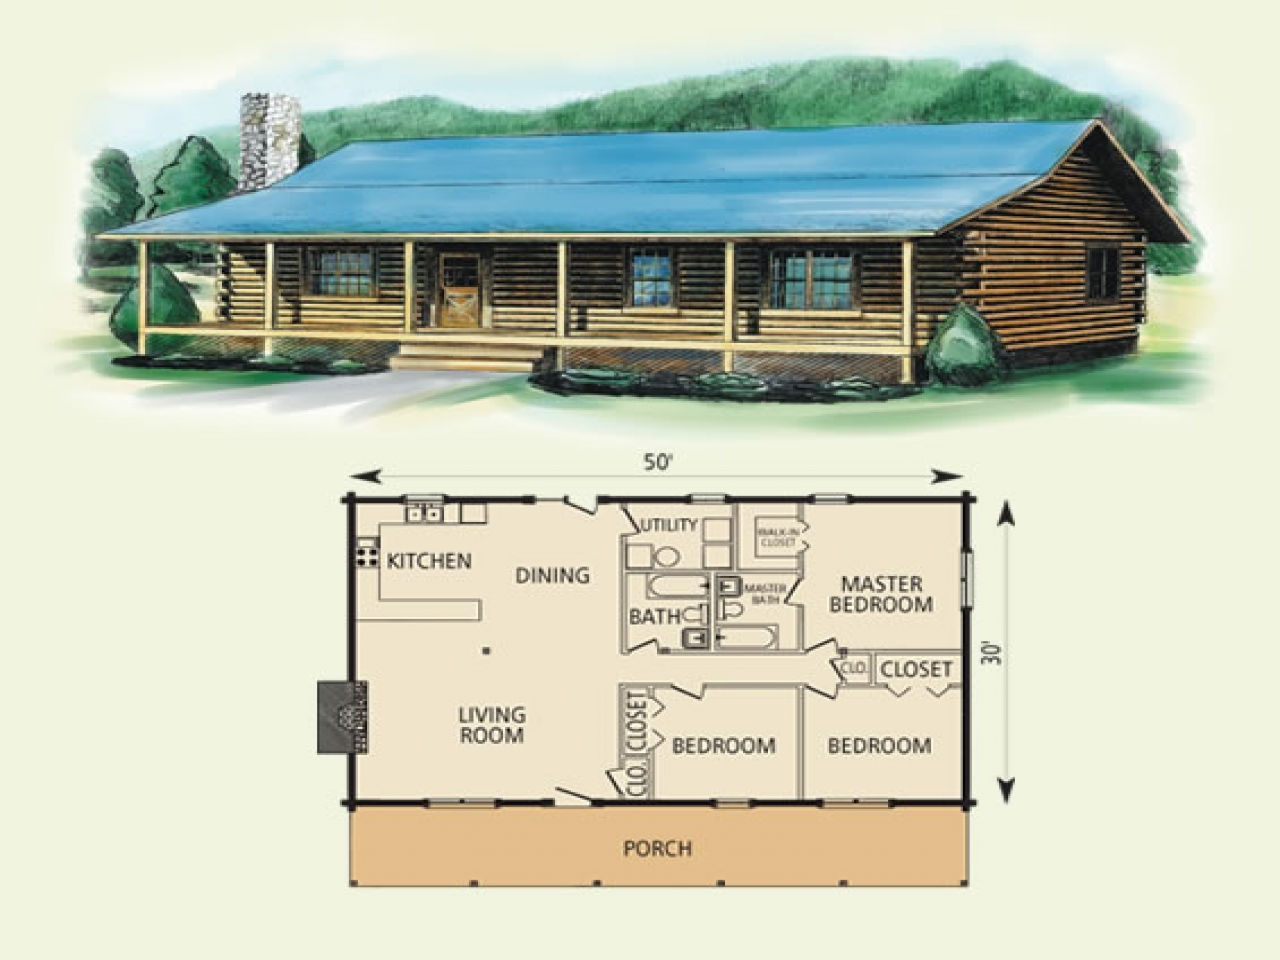 Building a simple log cabin simple log cabin home floor for Basic log cabin plans